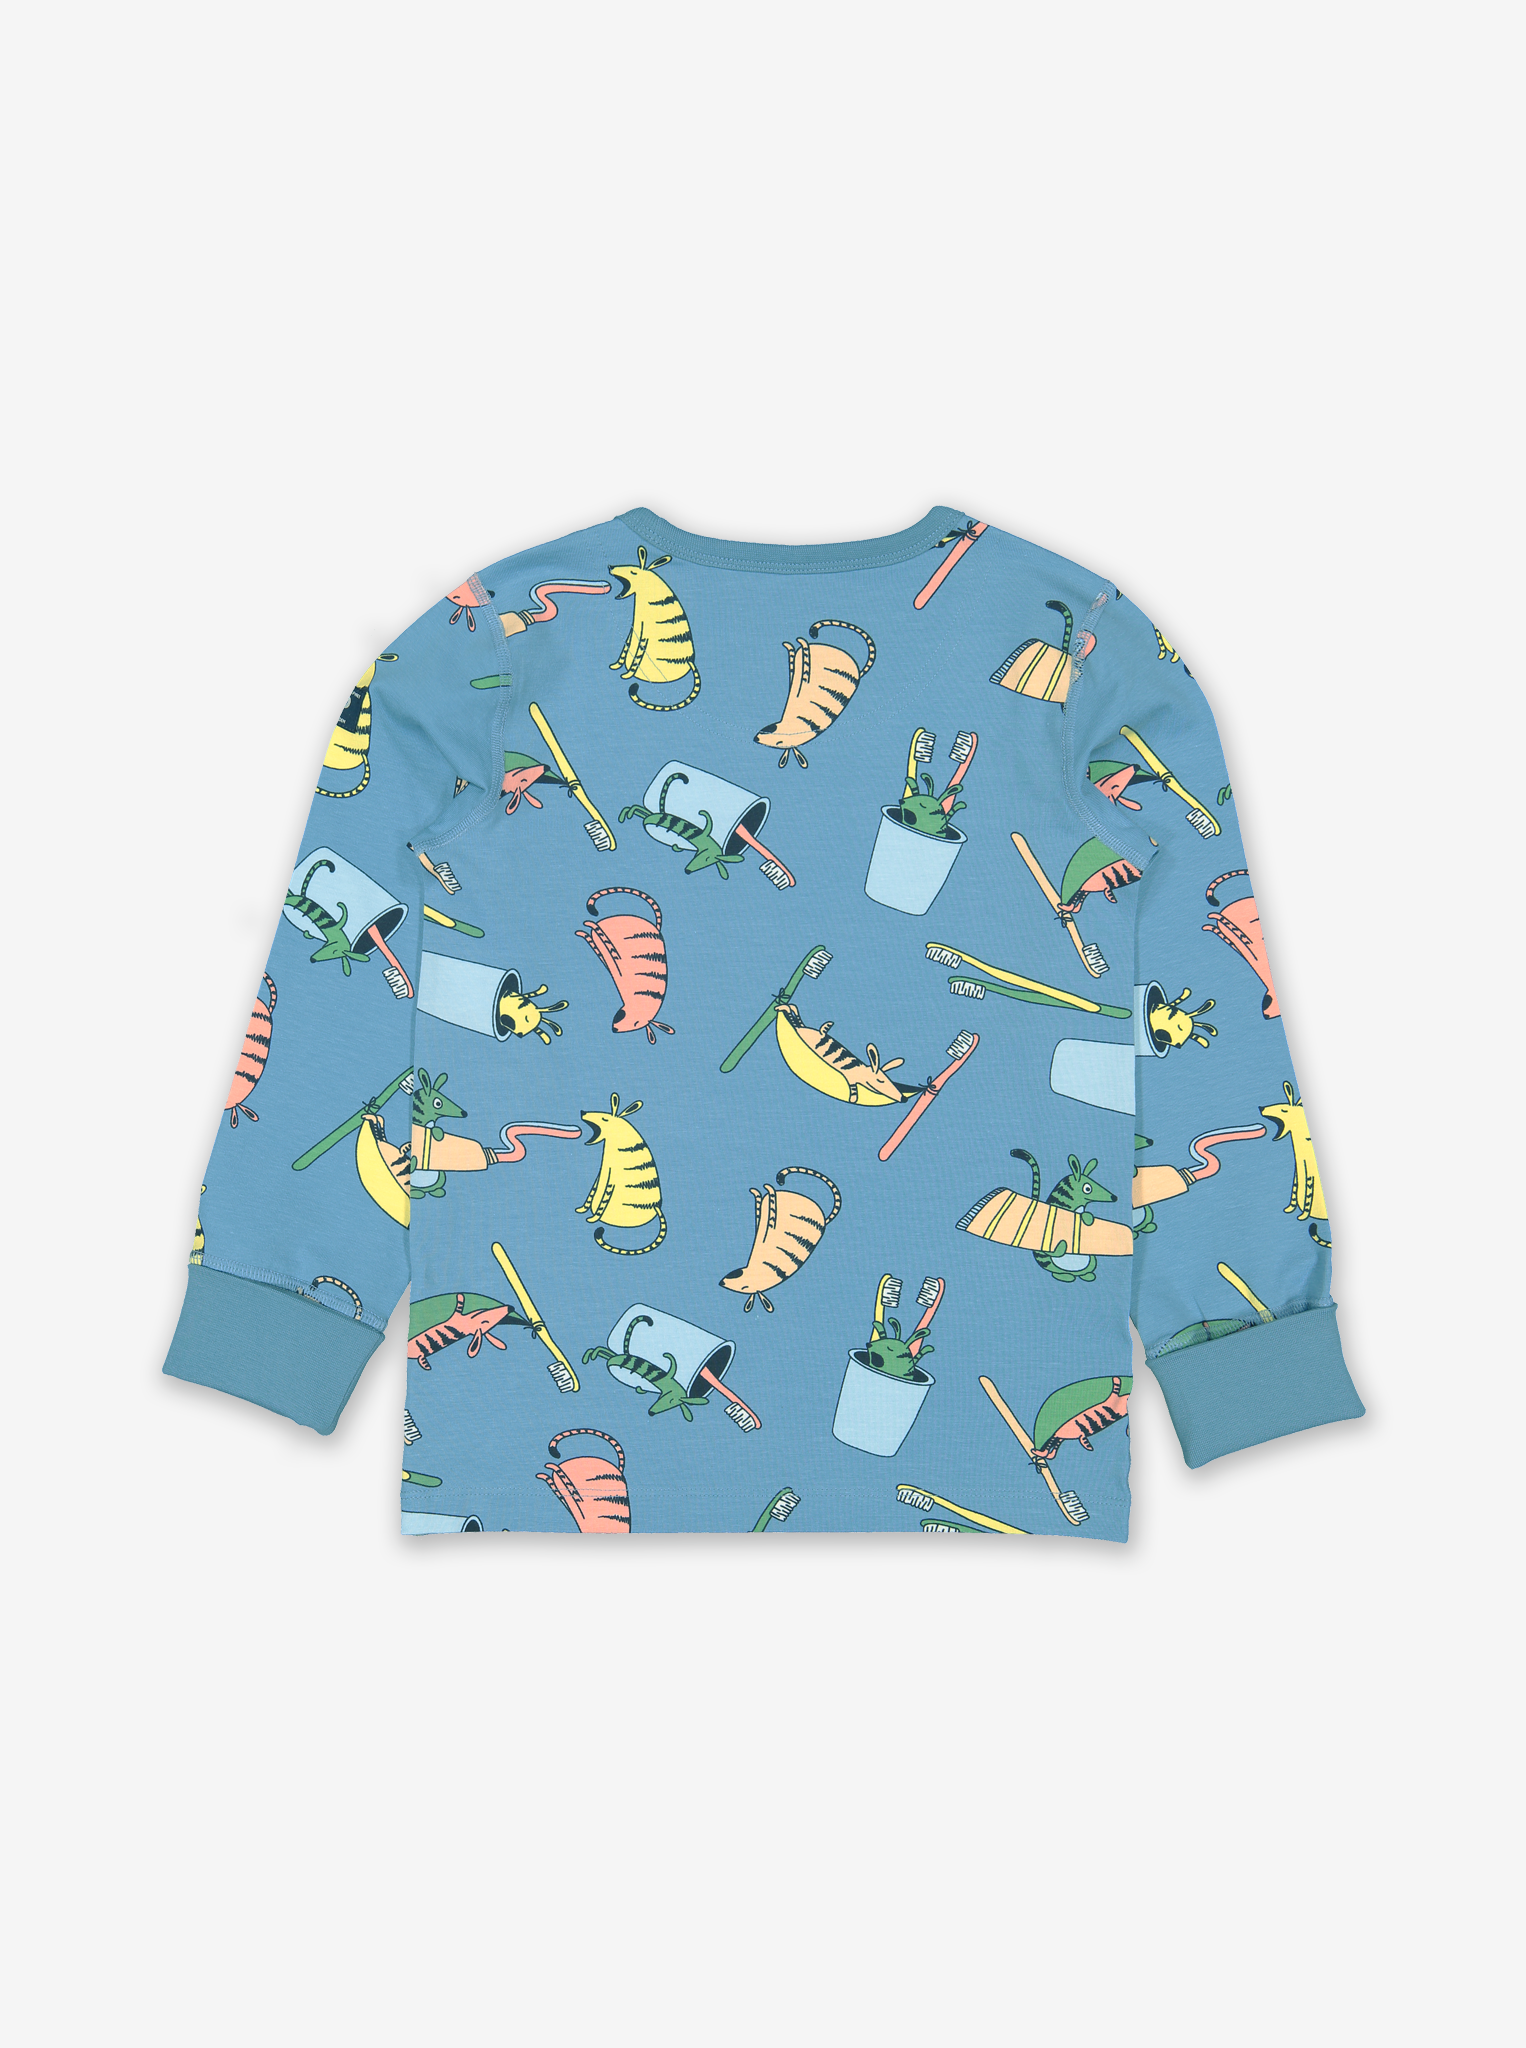 Numbat Print Kids Pyjamas-Boy-1-8y-Blue